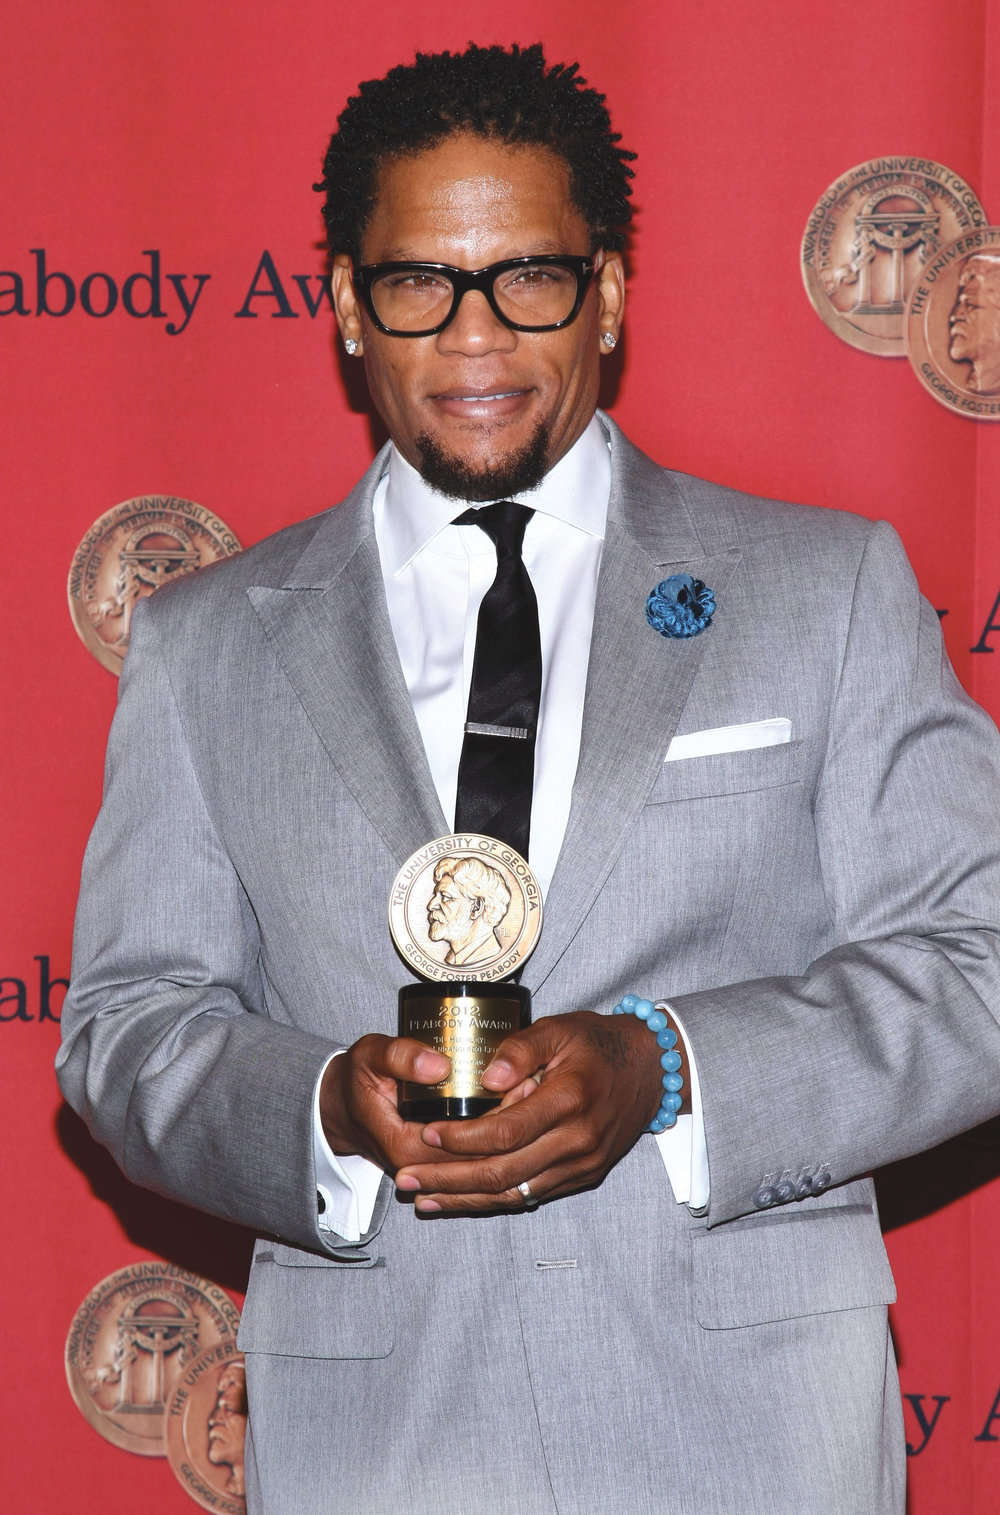 """D.L. Hughley at the 72nd Annual Peabody Awards Luncheon for """"The Endangered List"""" Waldorf-Astoria Hotel / (Photo: Janafrench93/Wikimedia Commons)"""